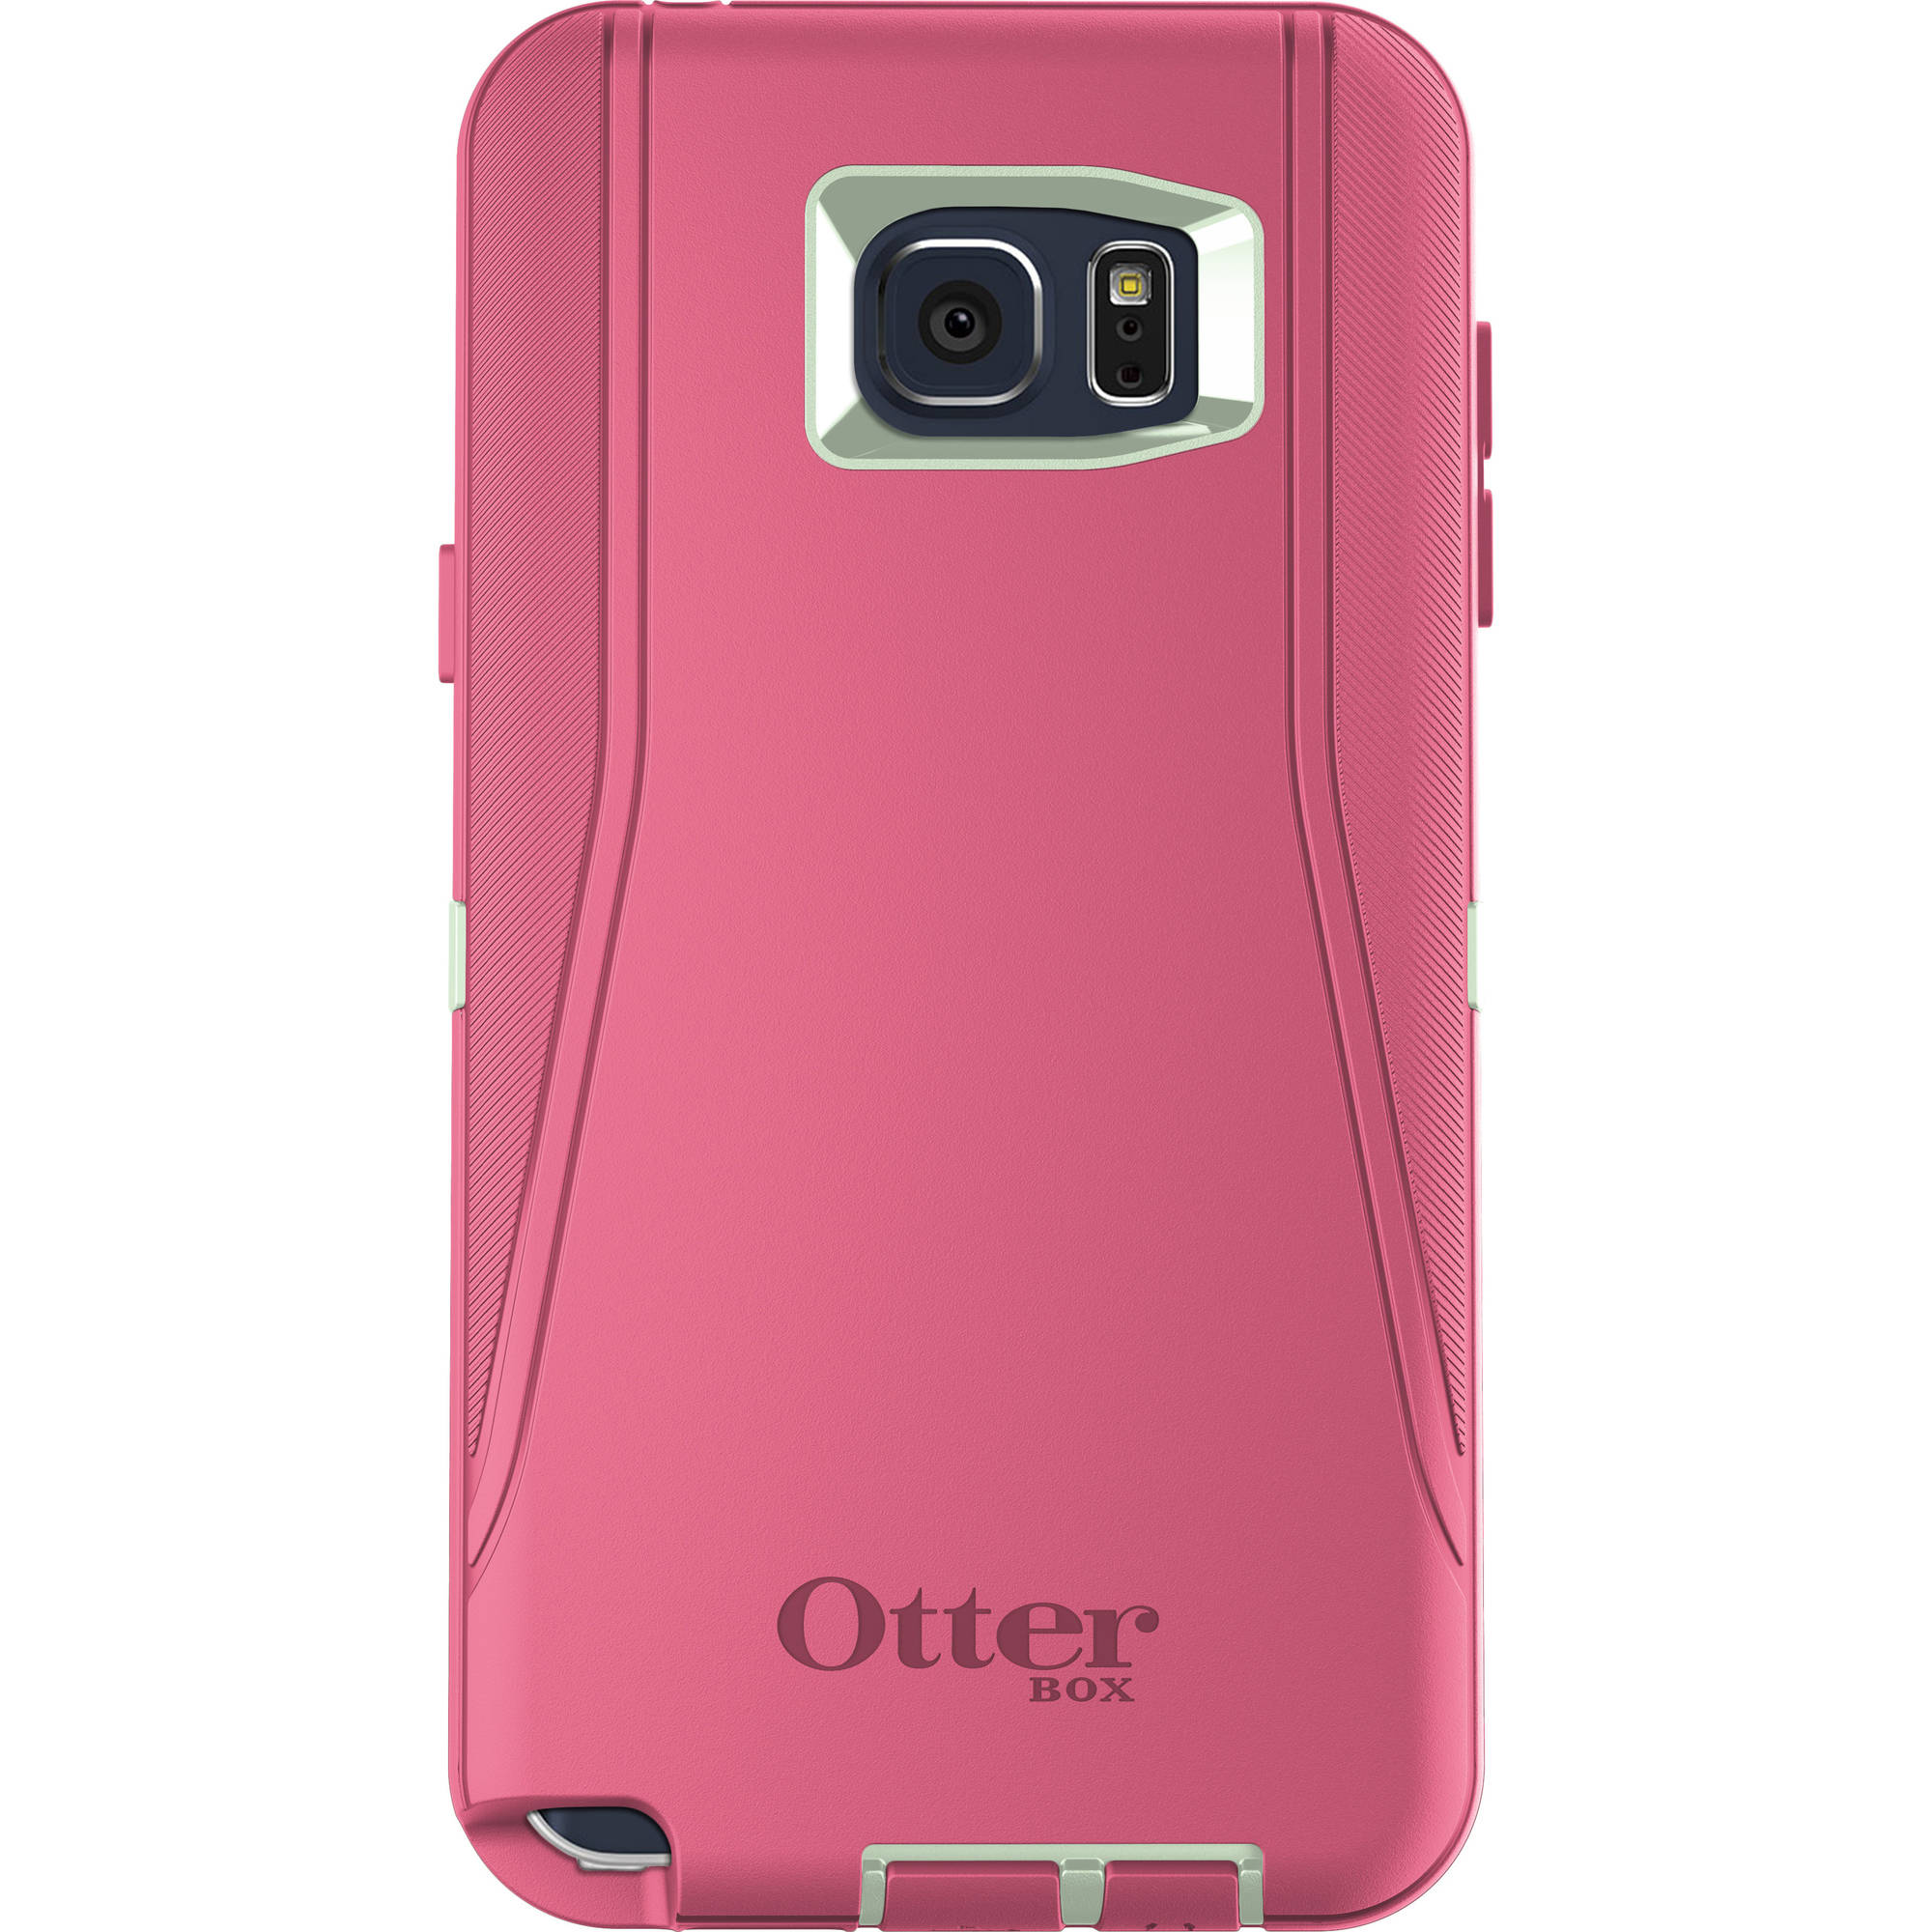 OtterBox Defender Case for Samsung Galaxy Note5, Melon Pop